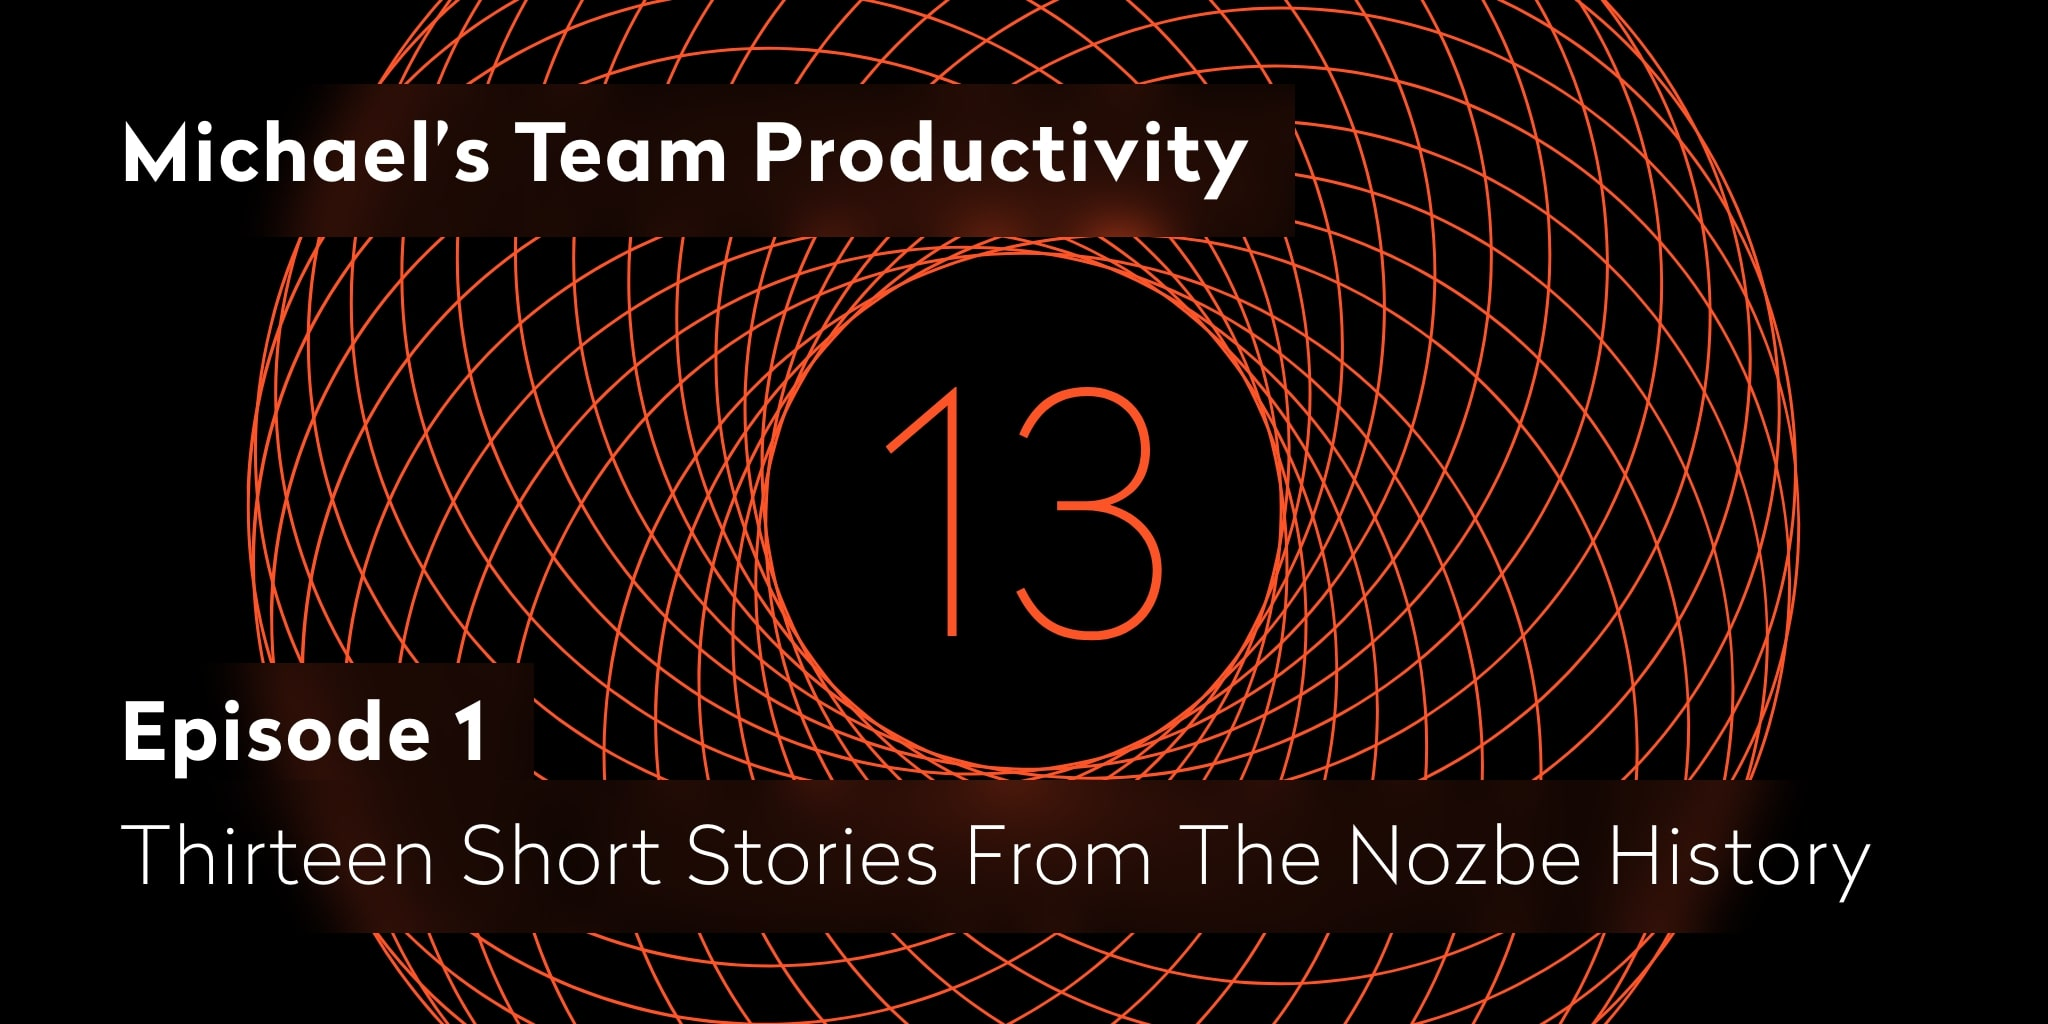 13 stories for Nozbe's 13th birthday